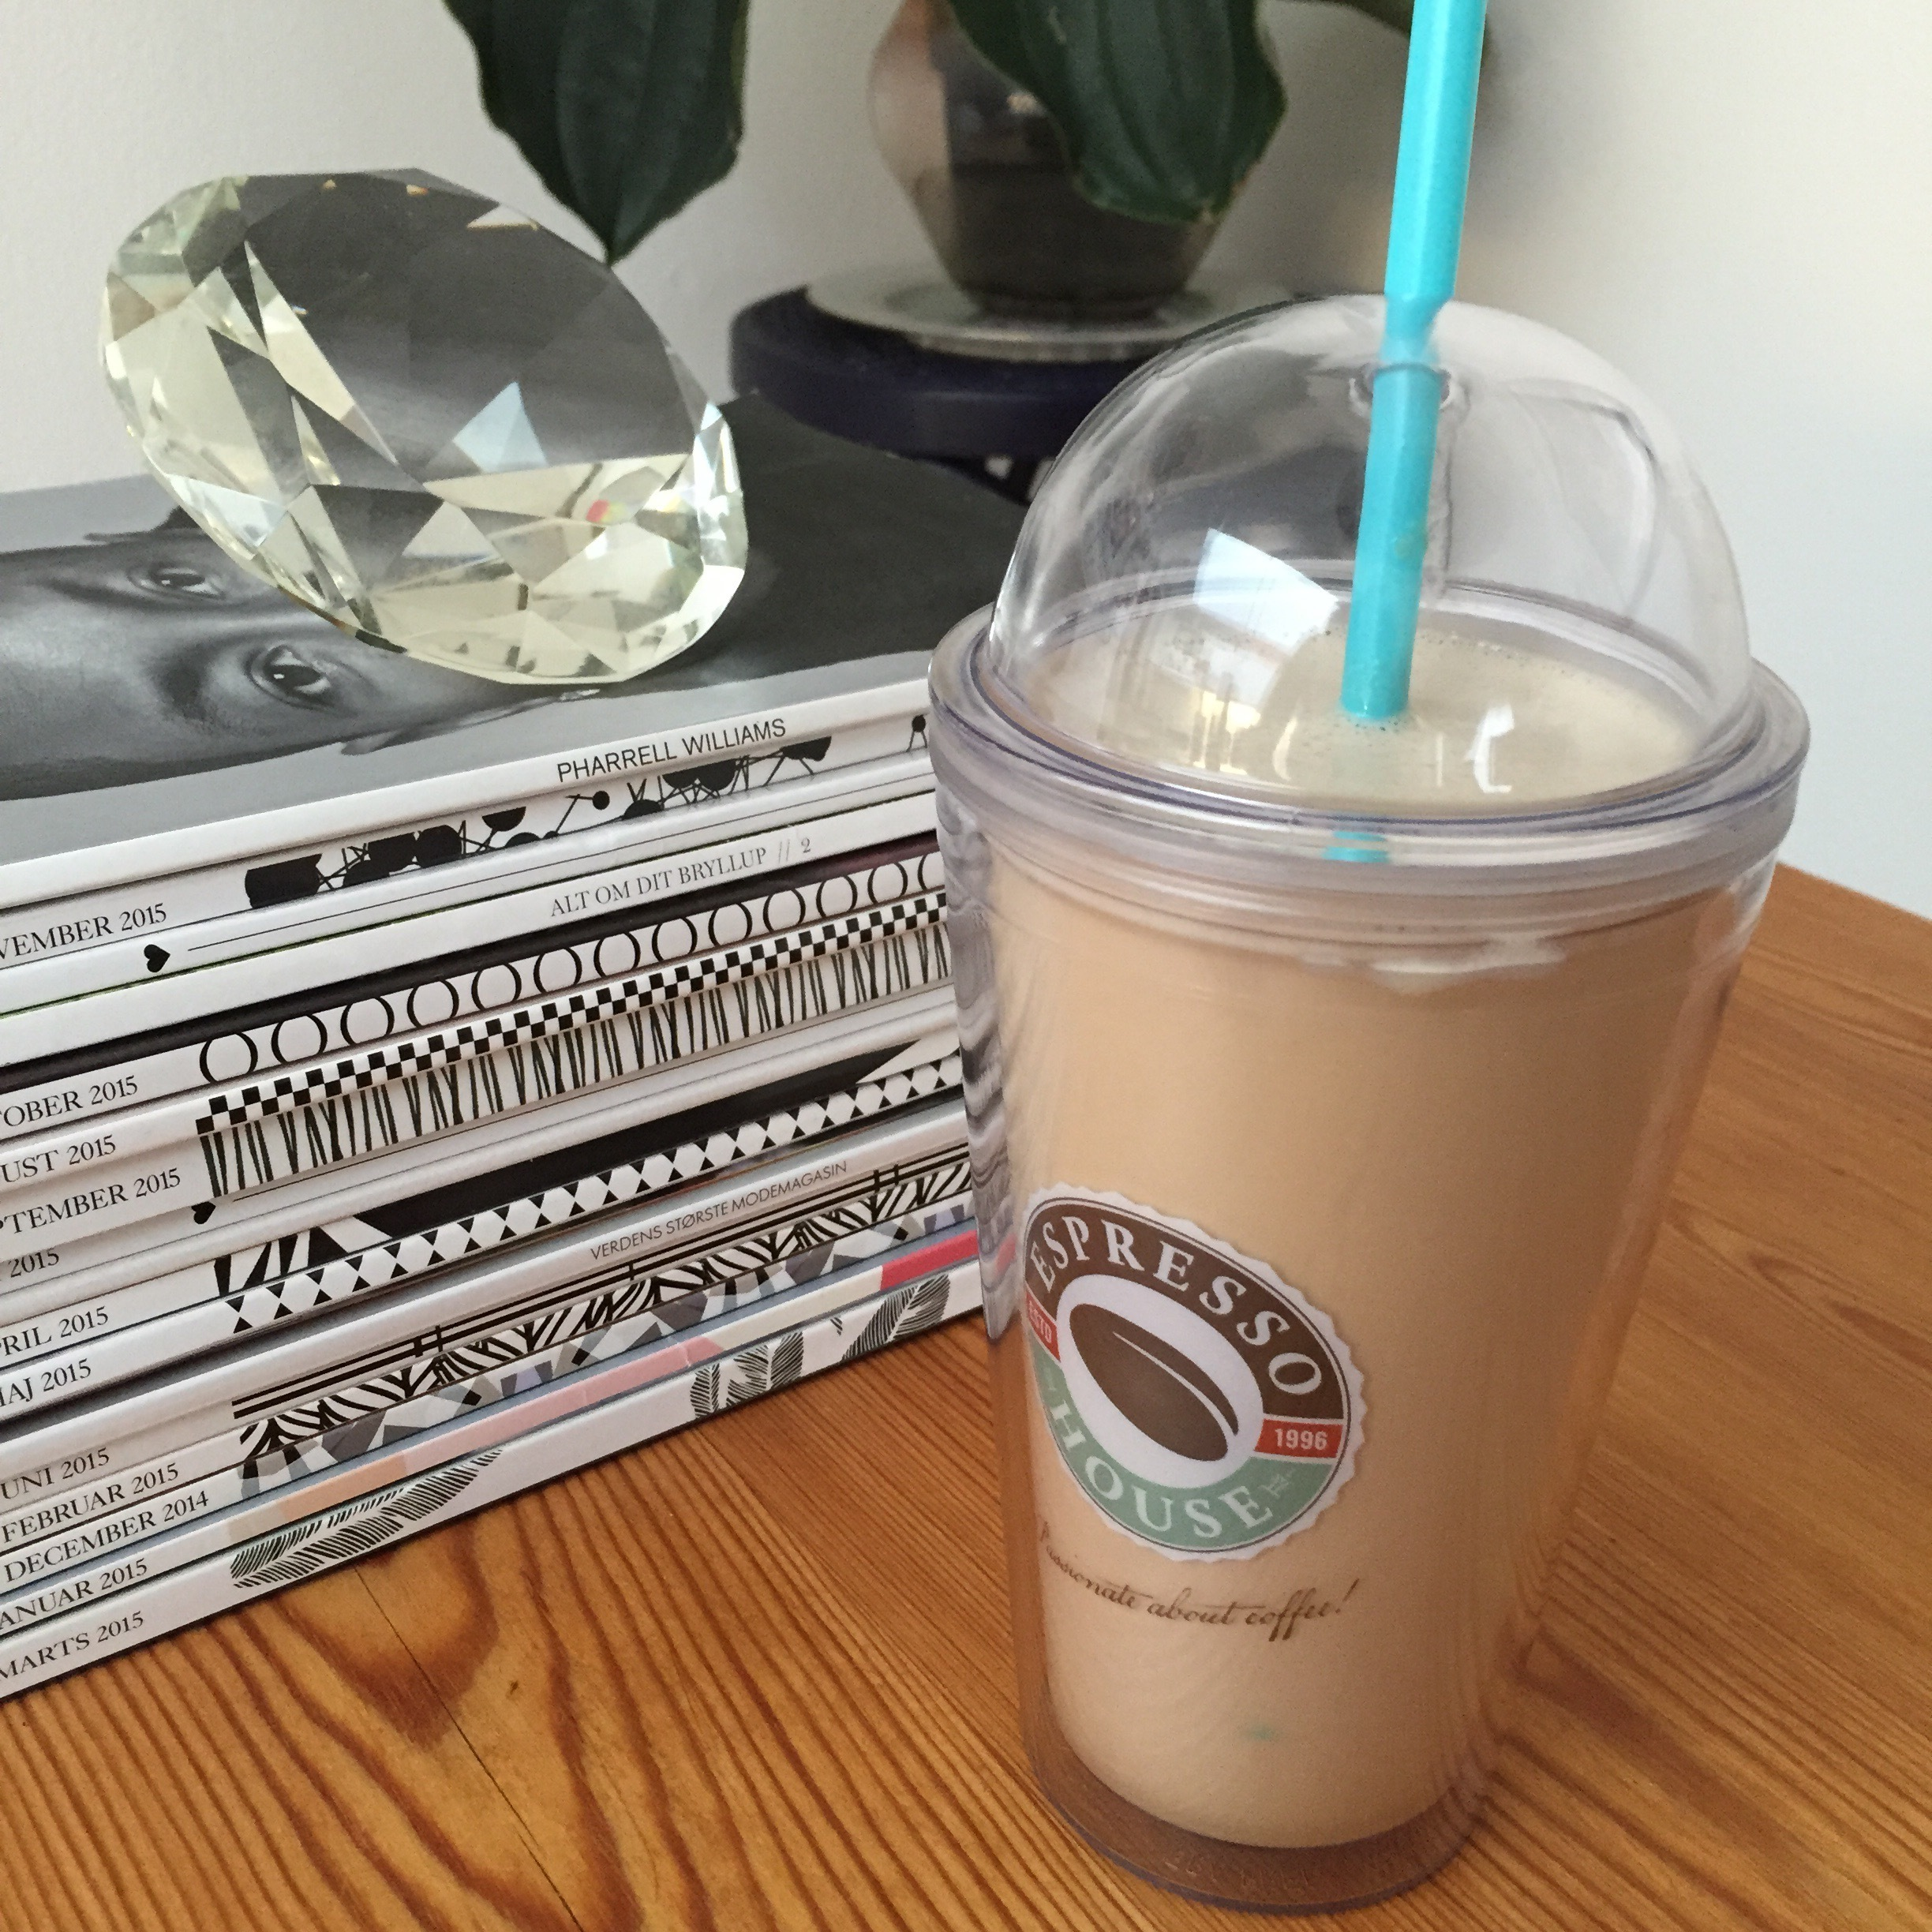 Iced Caramel Protein Coffee